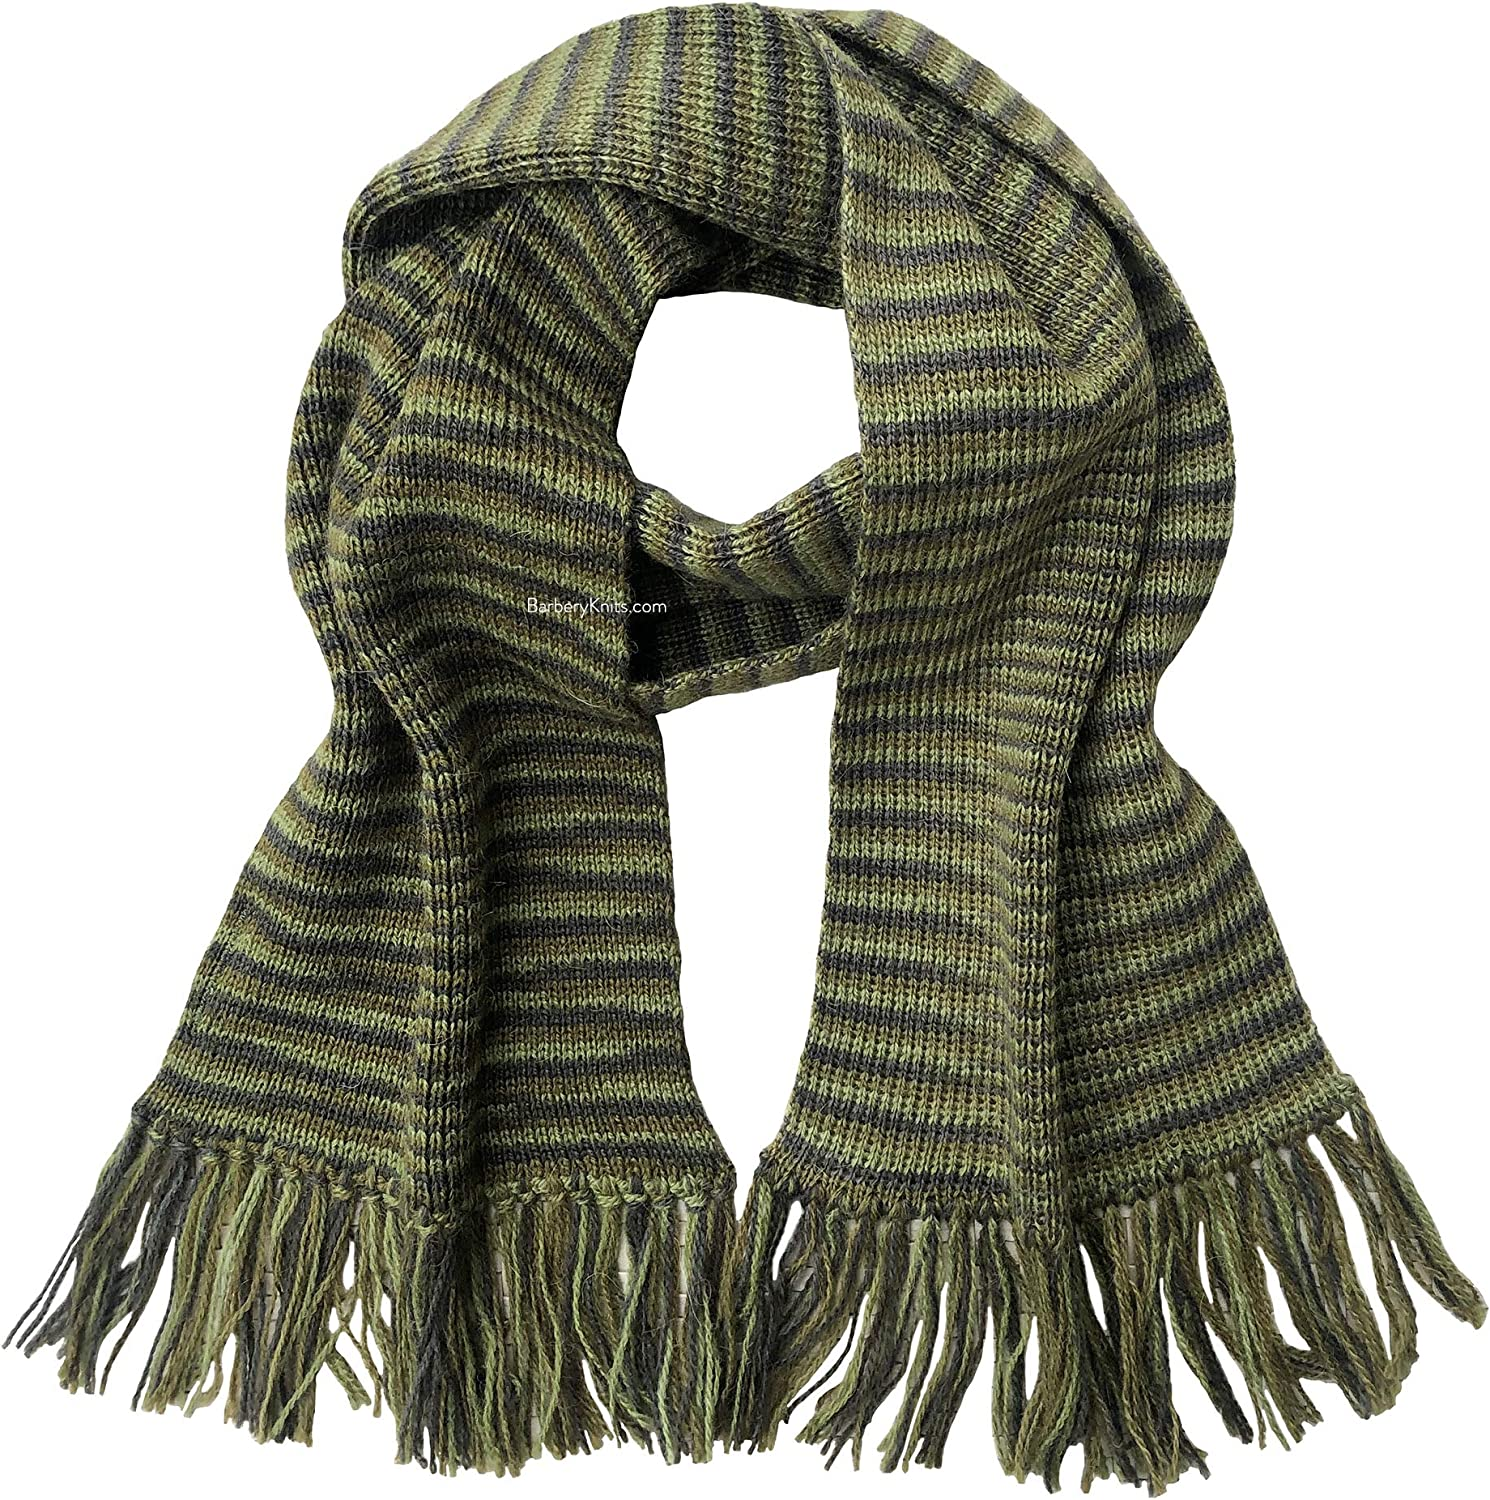 Alpaca and Wool Lightweight Scarf in Olive Stripes - Design Name: Boise (Ready to Ship from France)